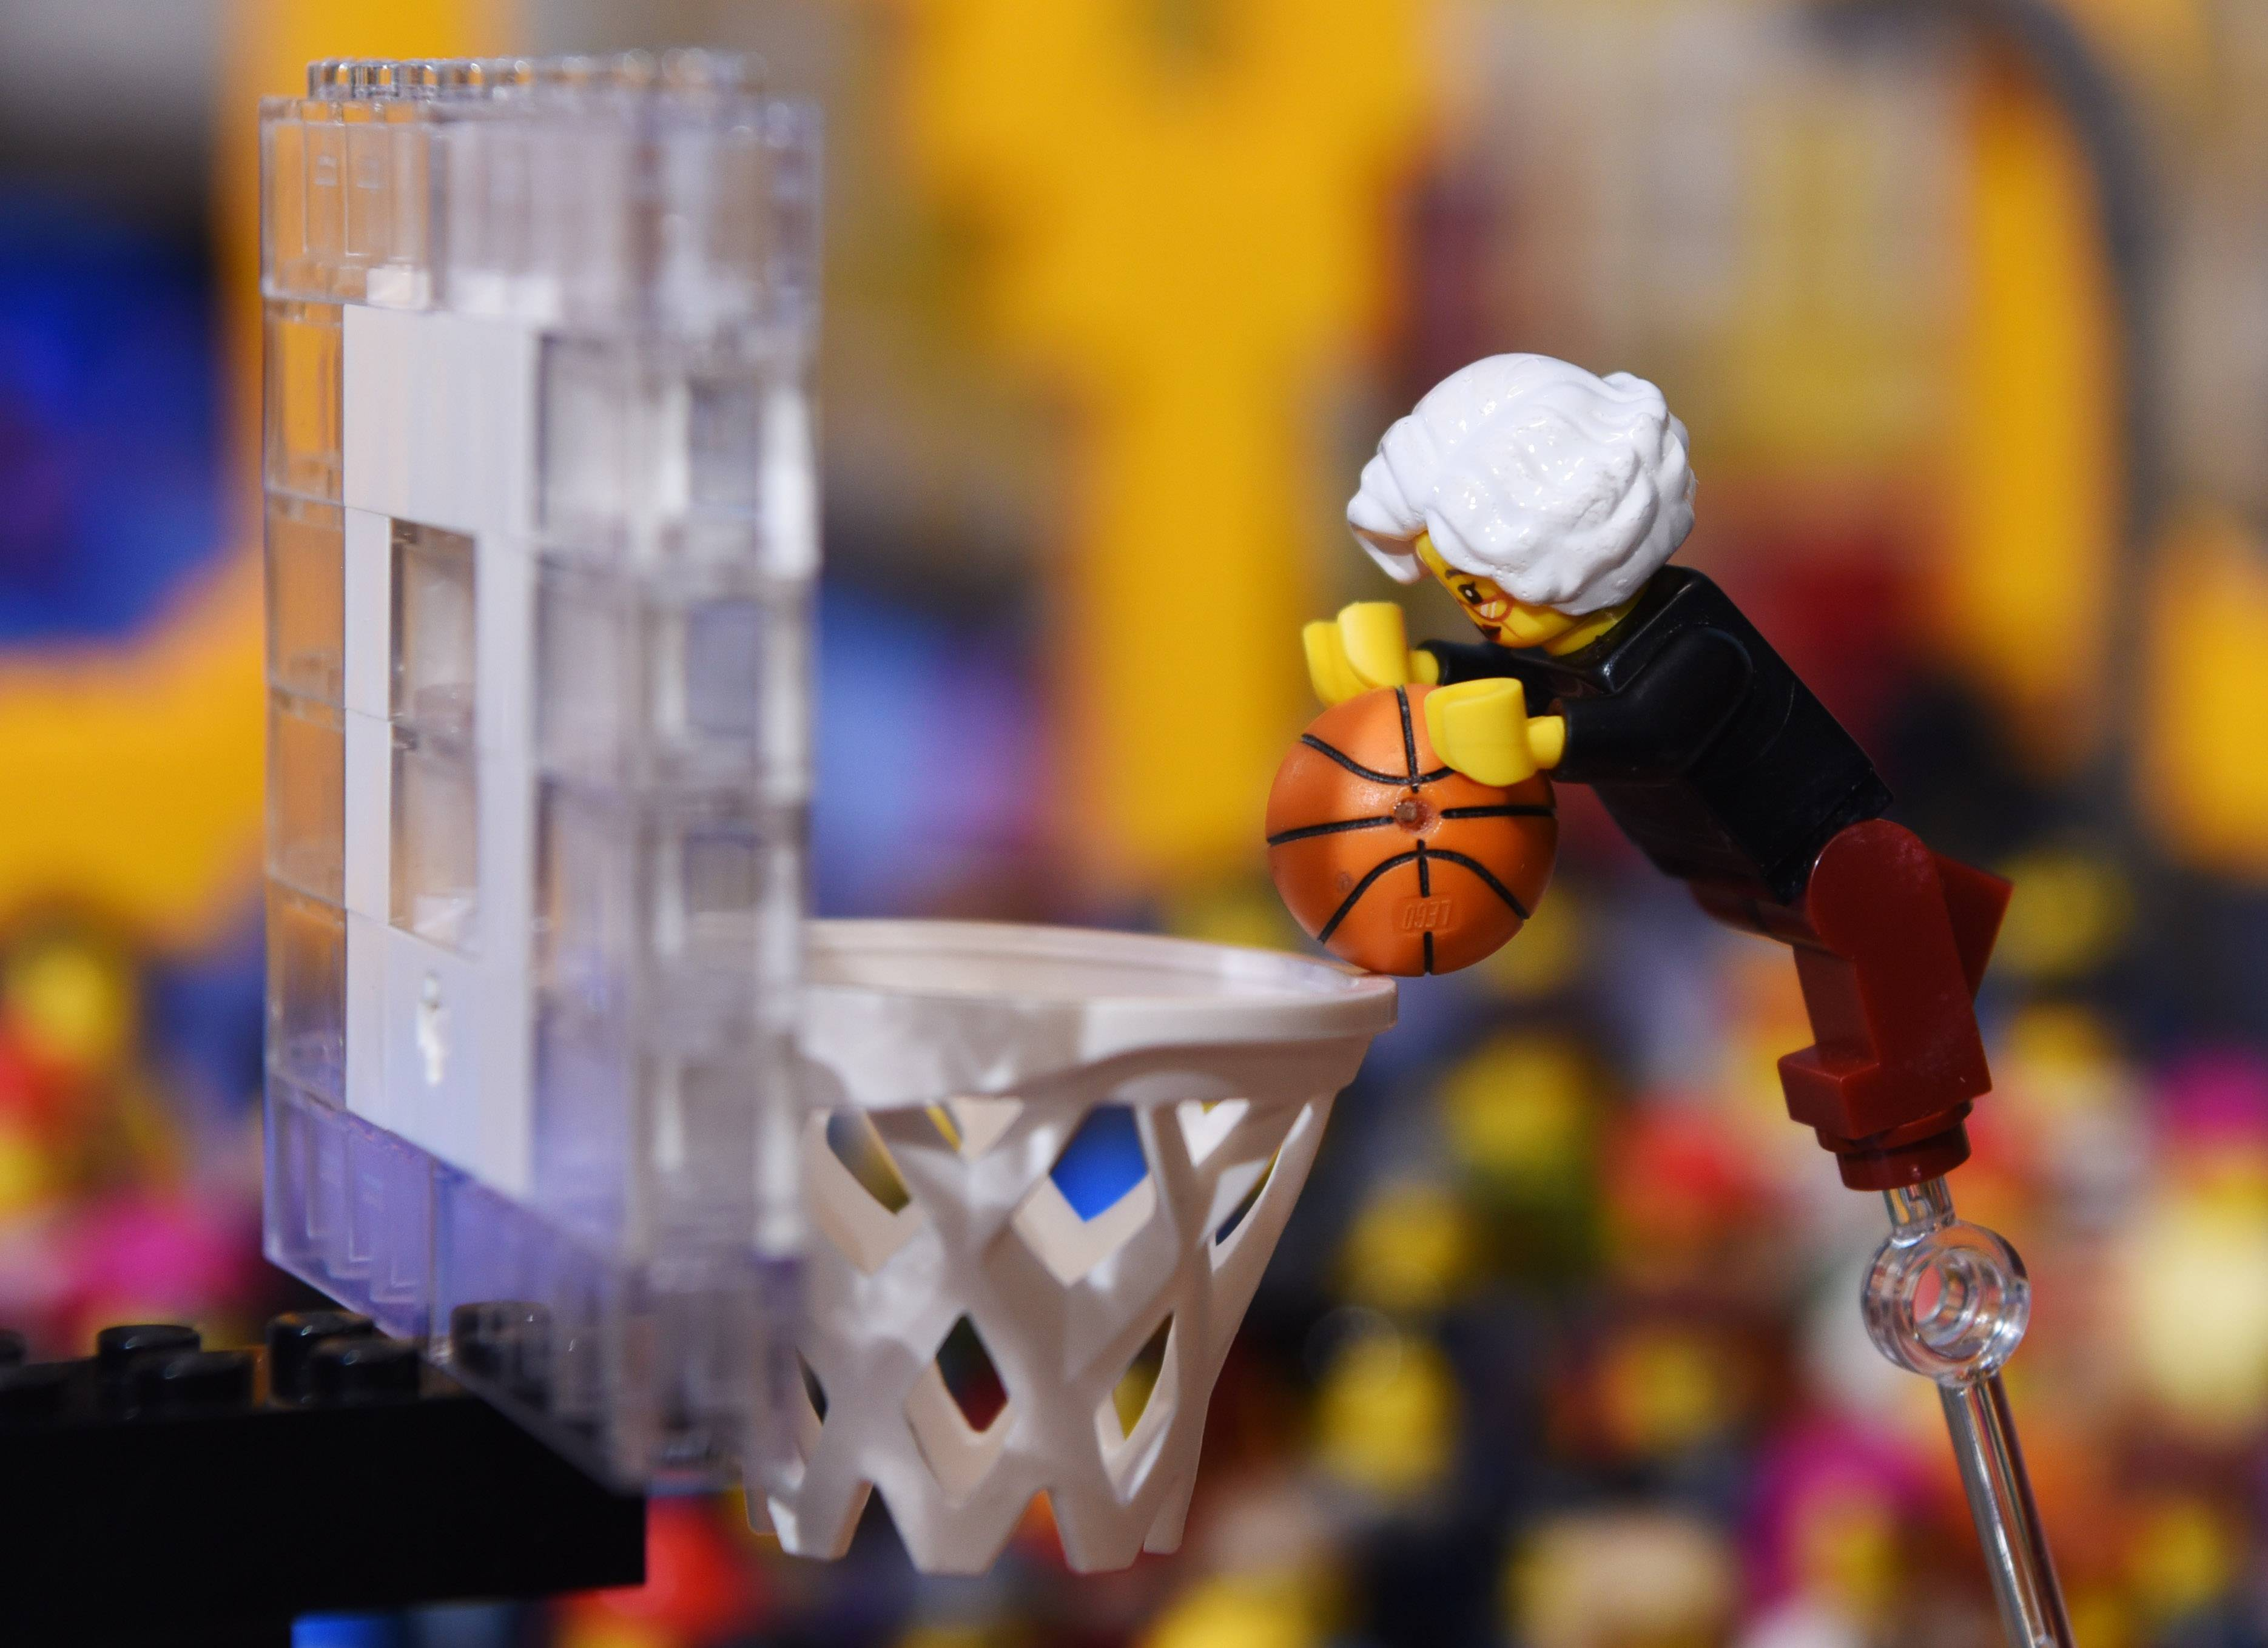 A minifigure of Loyola University's chaplain, 98-year-old Sister Jean Dolores Schmidt, dunking a basketball on the court is displayed Friday at the Legoland Discovery Center at Streets of Woodfield in Schaumburg.